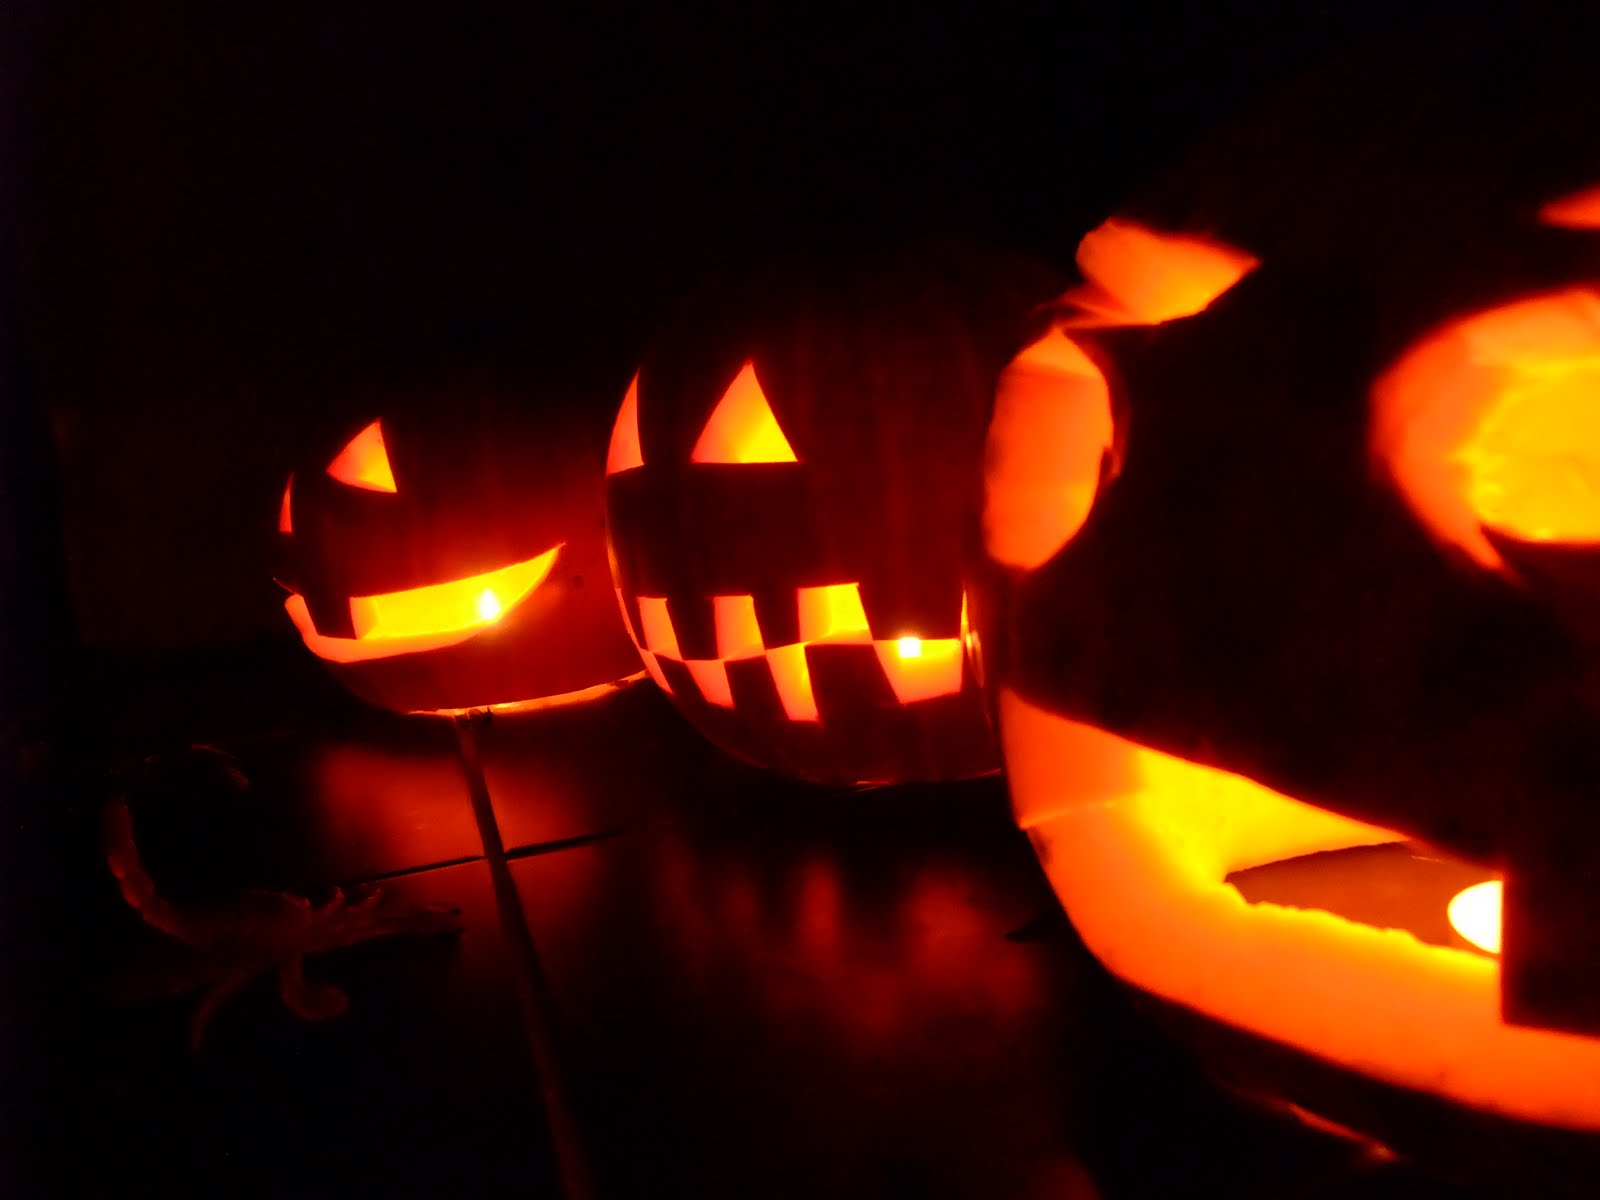 halloween marked the celtic new year in ireland was originally called samhain which translates to summers end in gaelic